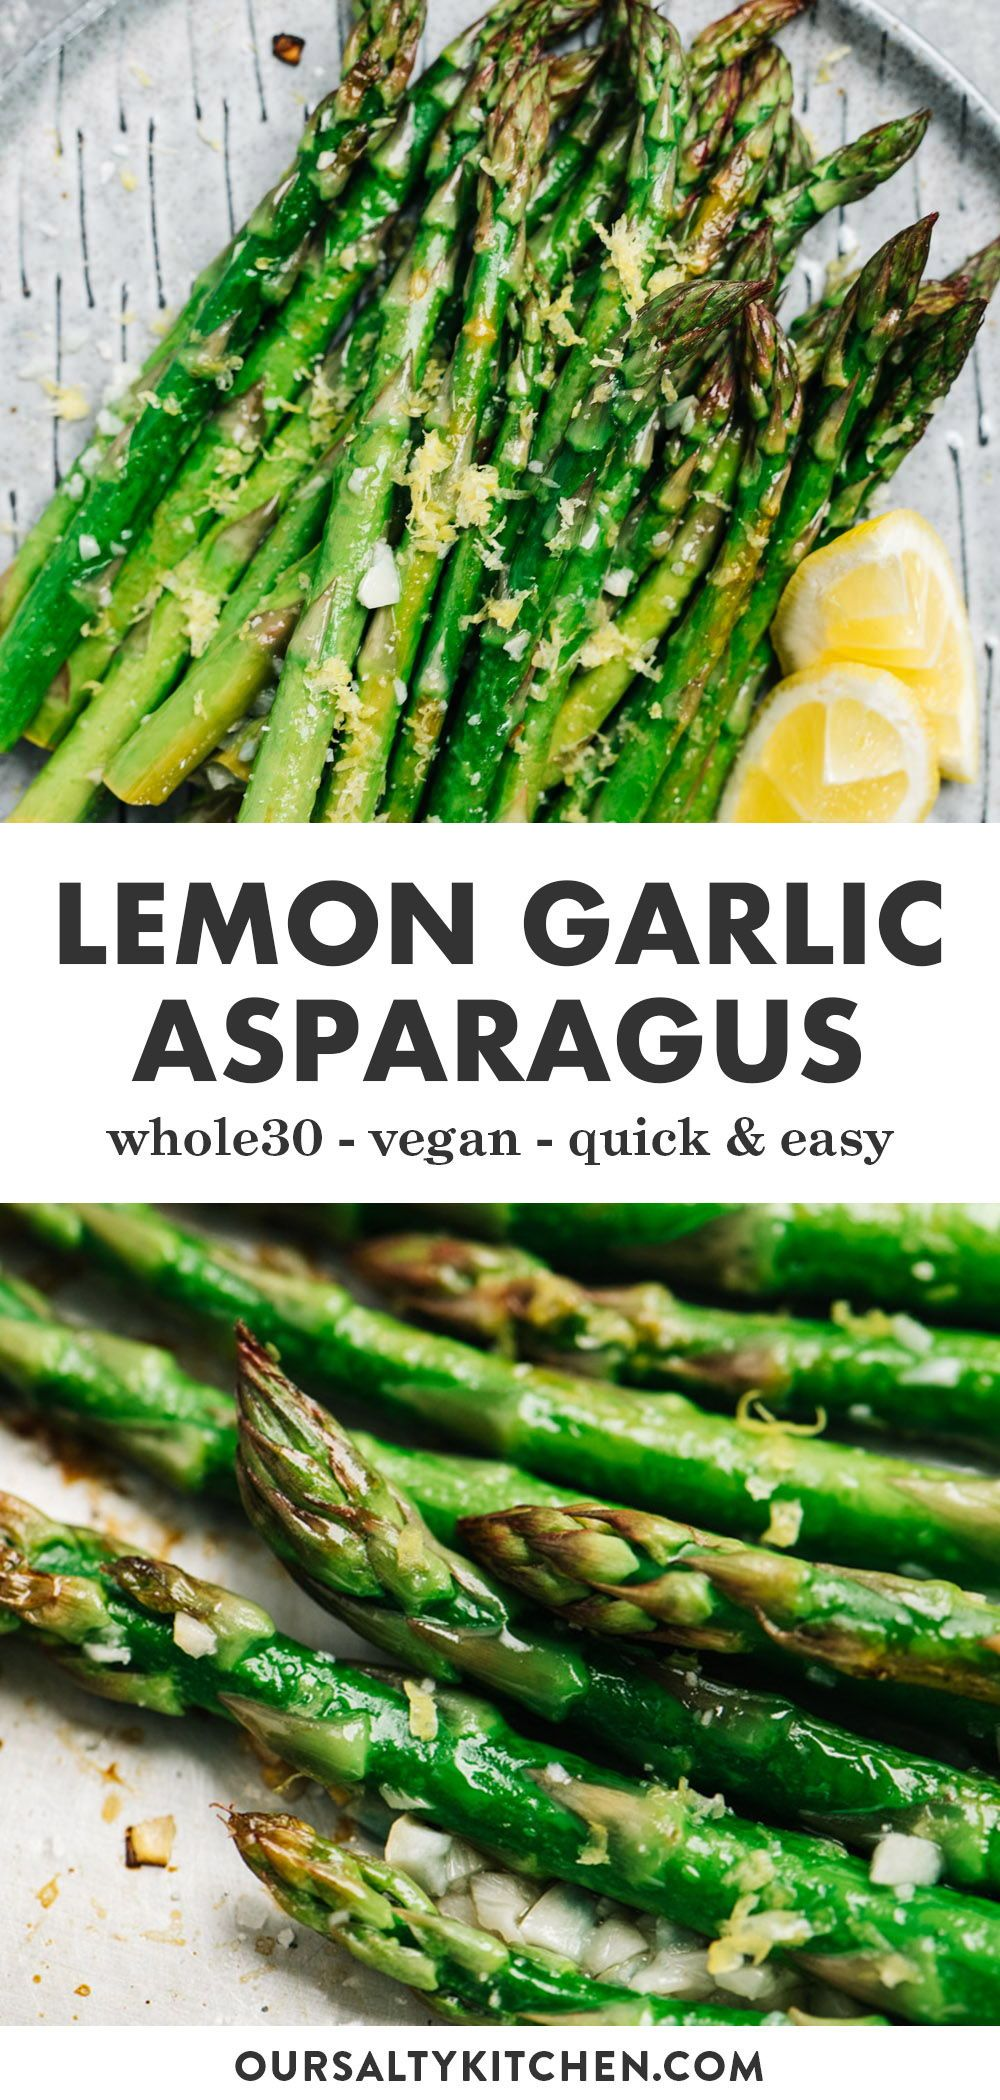 Oven Roasted Lemon Garlic Asparagus (Whole30, Vegan)